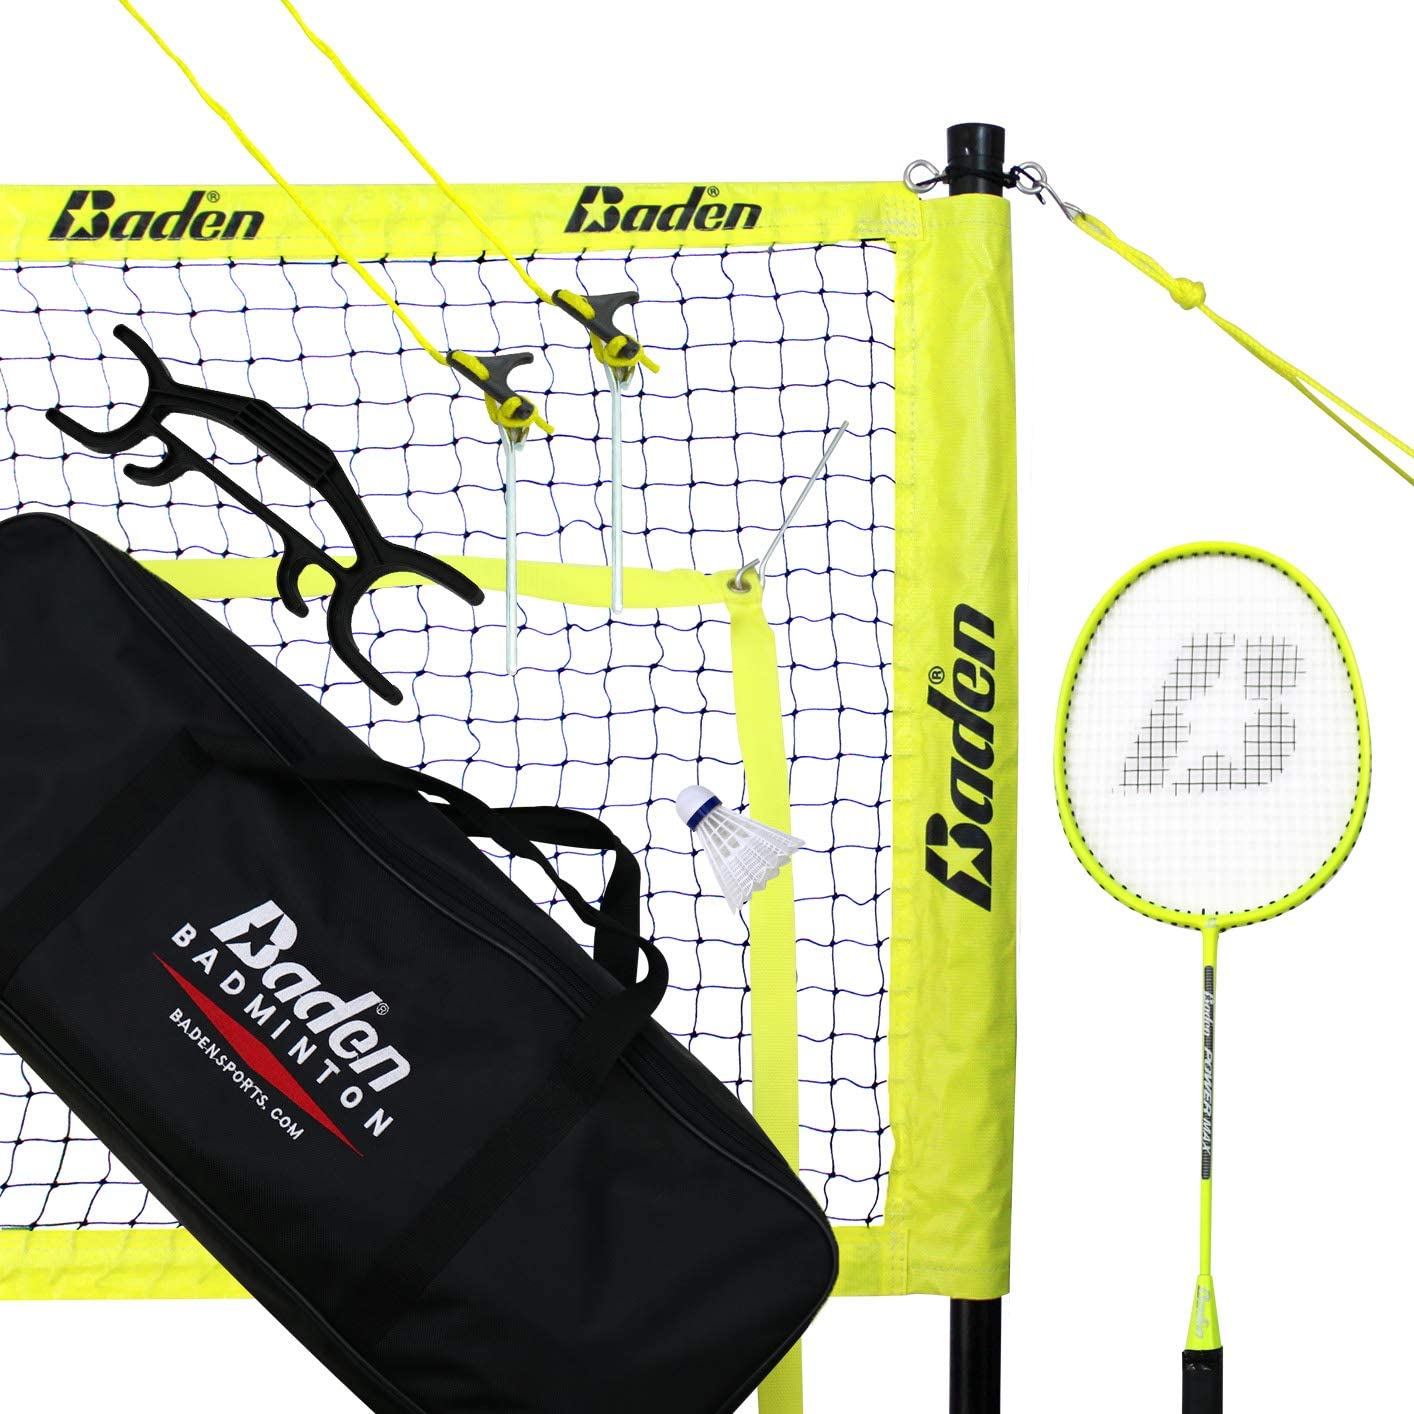 Baden Champions Badminton Set : Volleyball Net Set : Sports & Outdoors